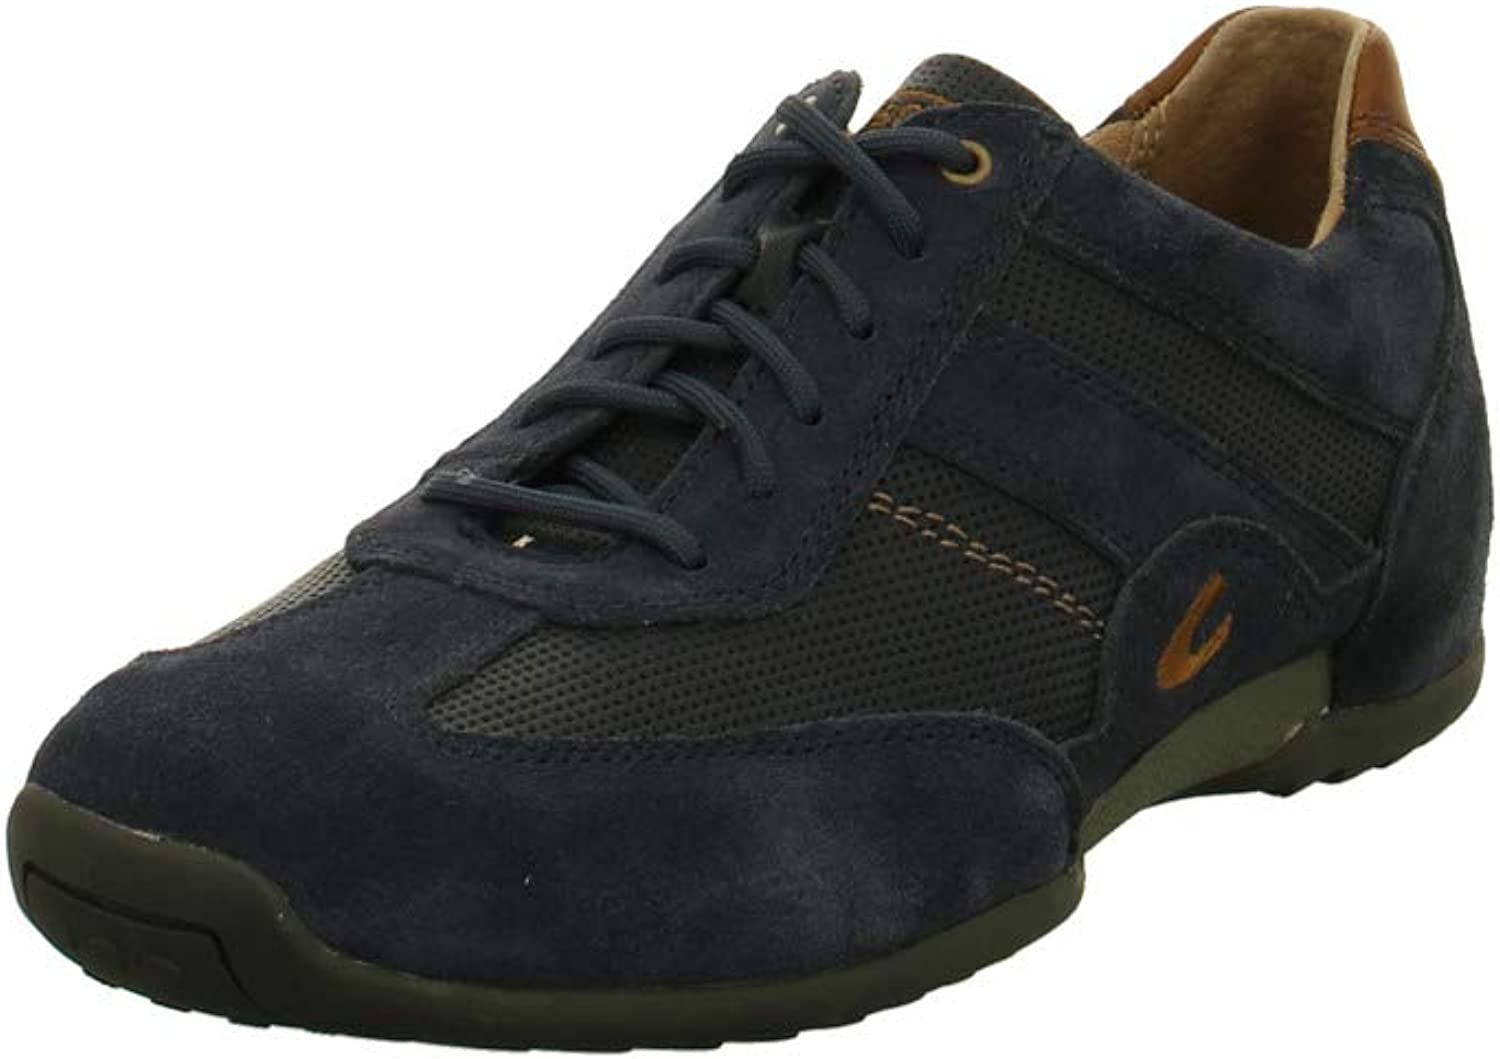 Camel active Men's Space 37 Low-Top Sneakers